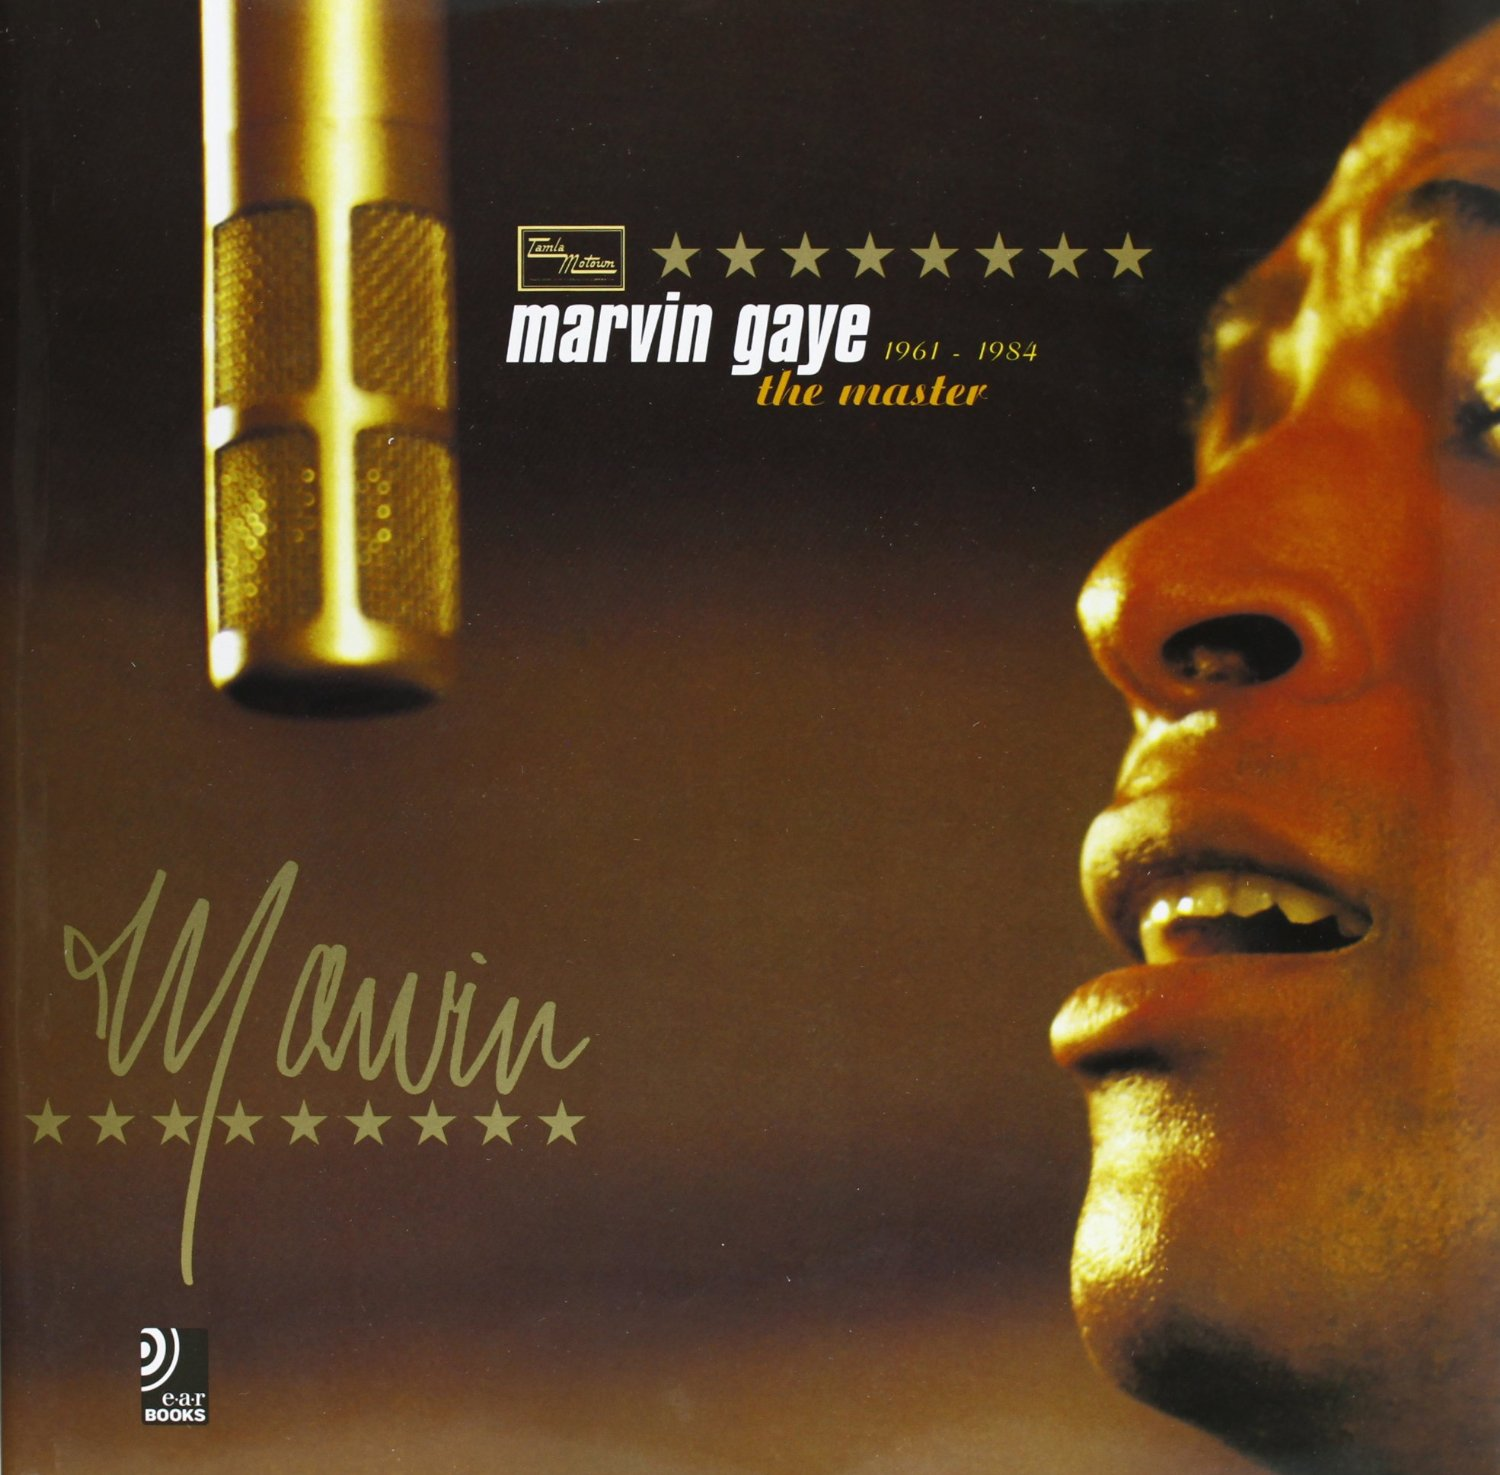 Marvin Gaye The Master 1961 - 1984